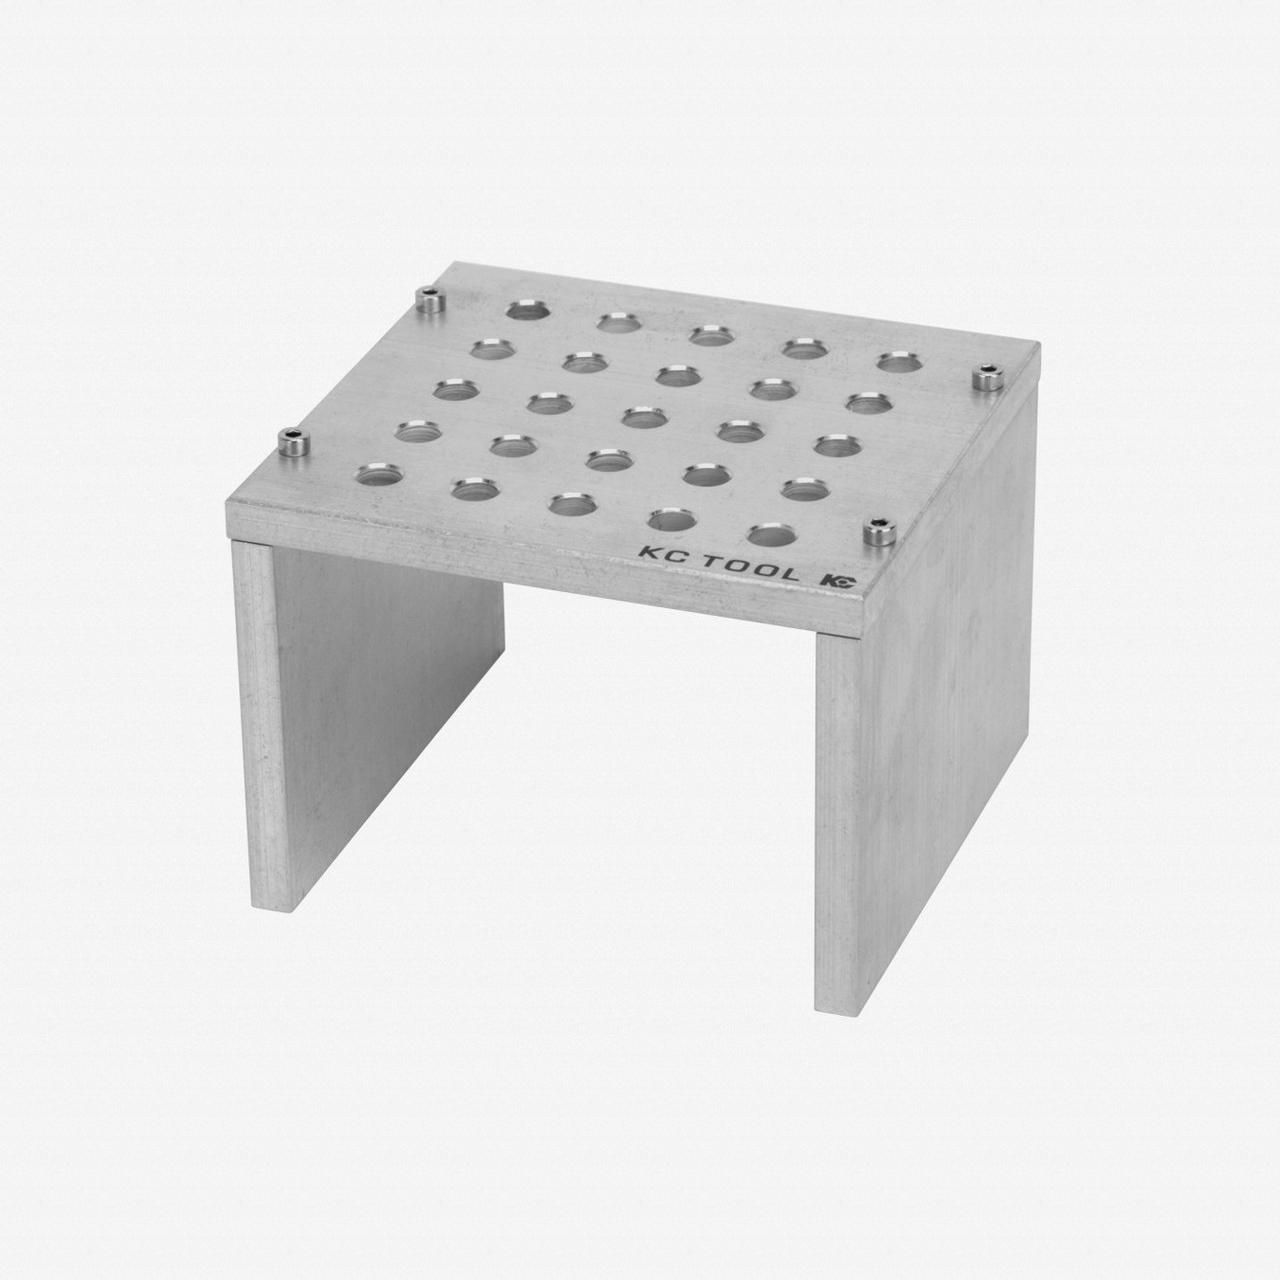 KC Tool Aluminum Bench Top Stand for Precision Tools - 25 Holes, Tumbled Finish - KC Tool